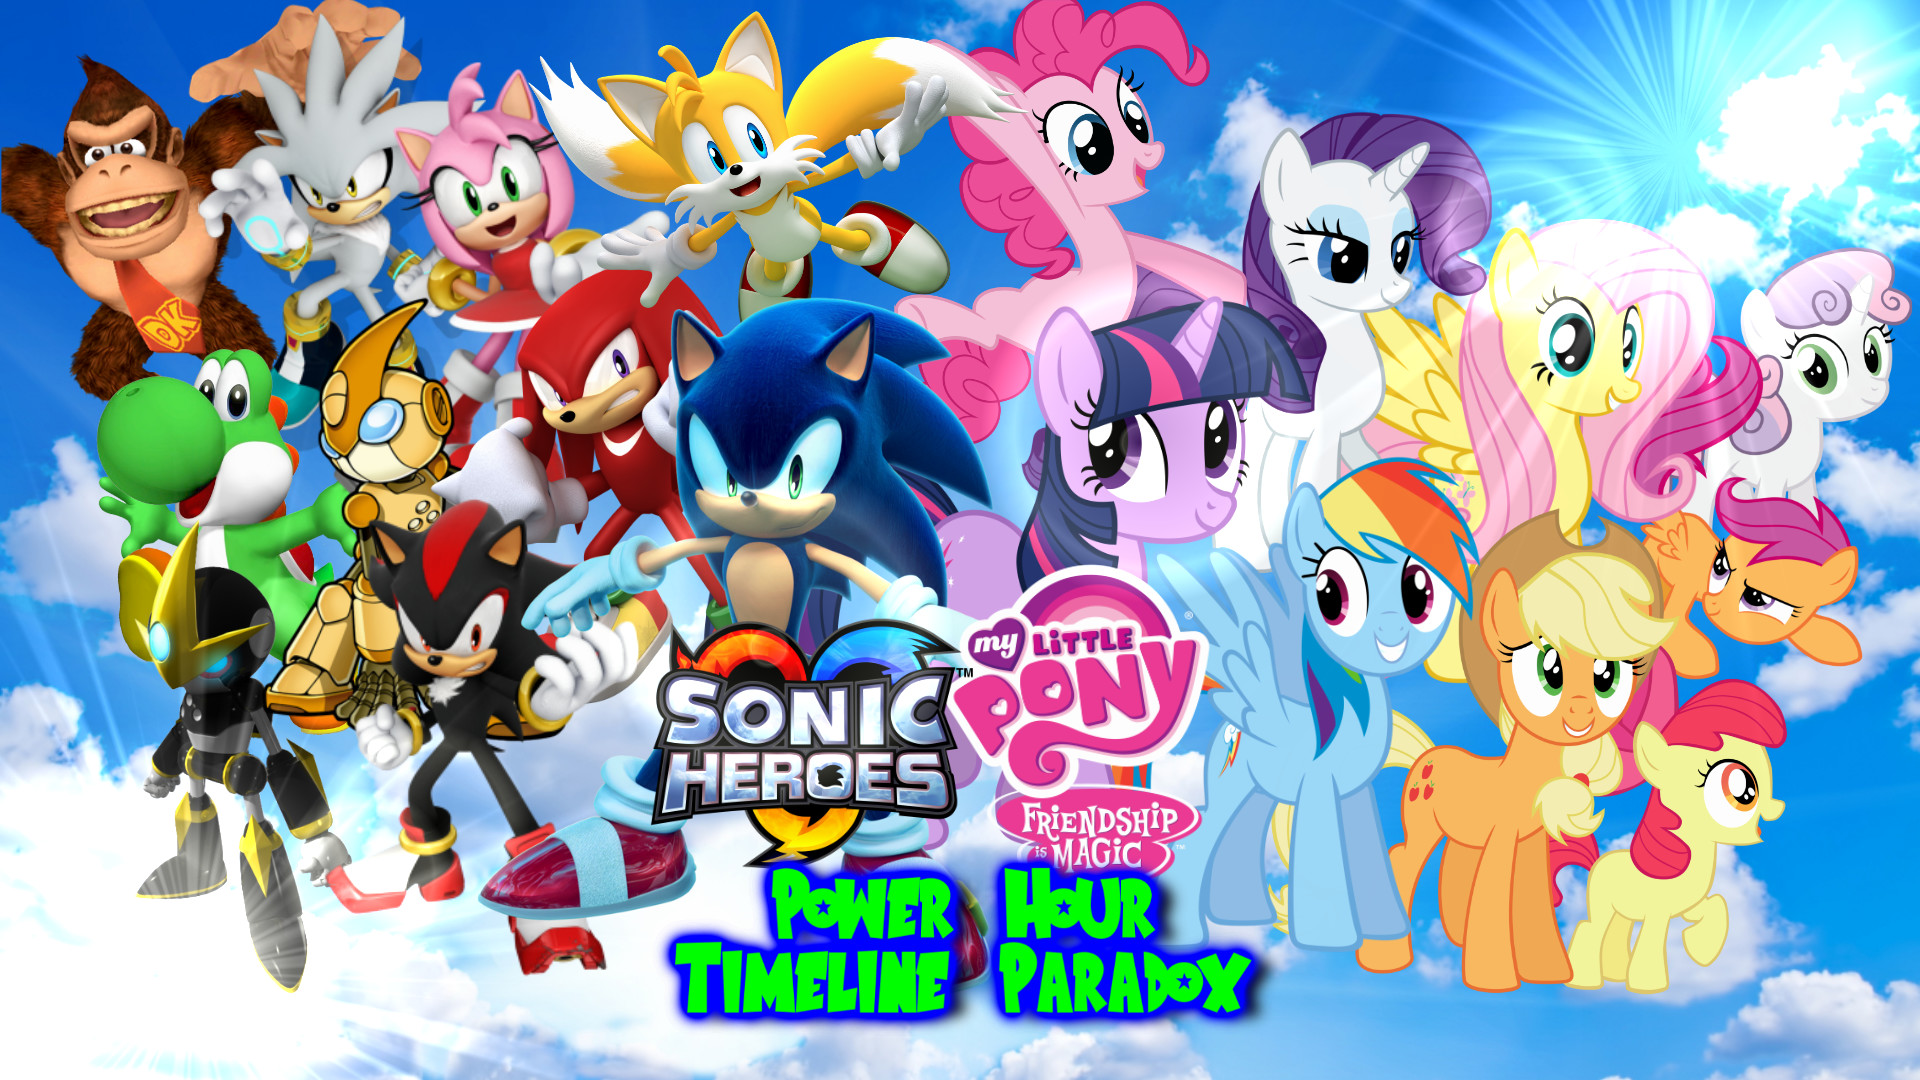 1920x1080 Sonic and My Little Pony Wallpapers 2016 to 2017 by .